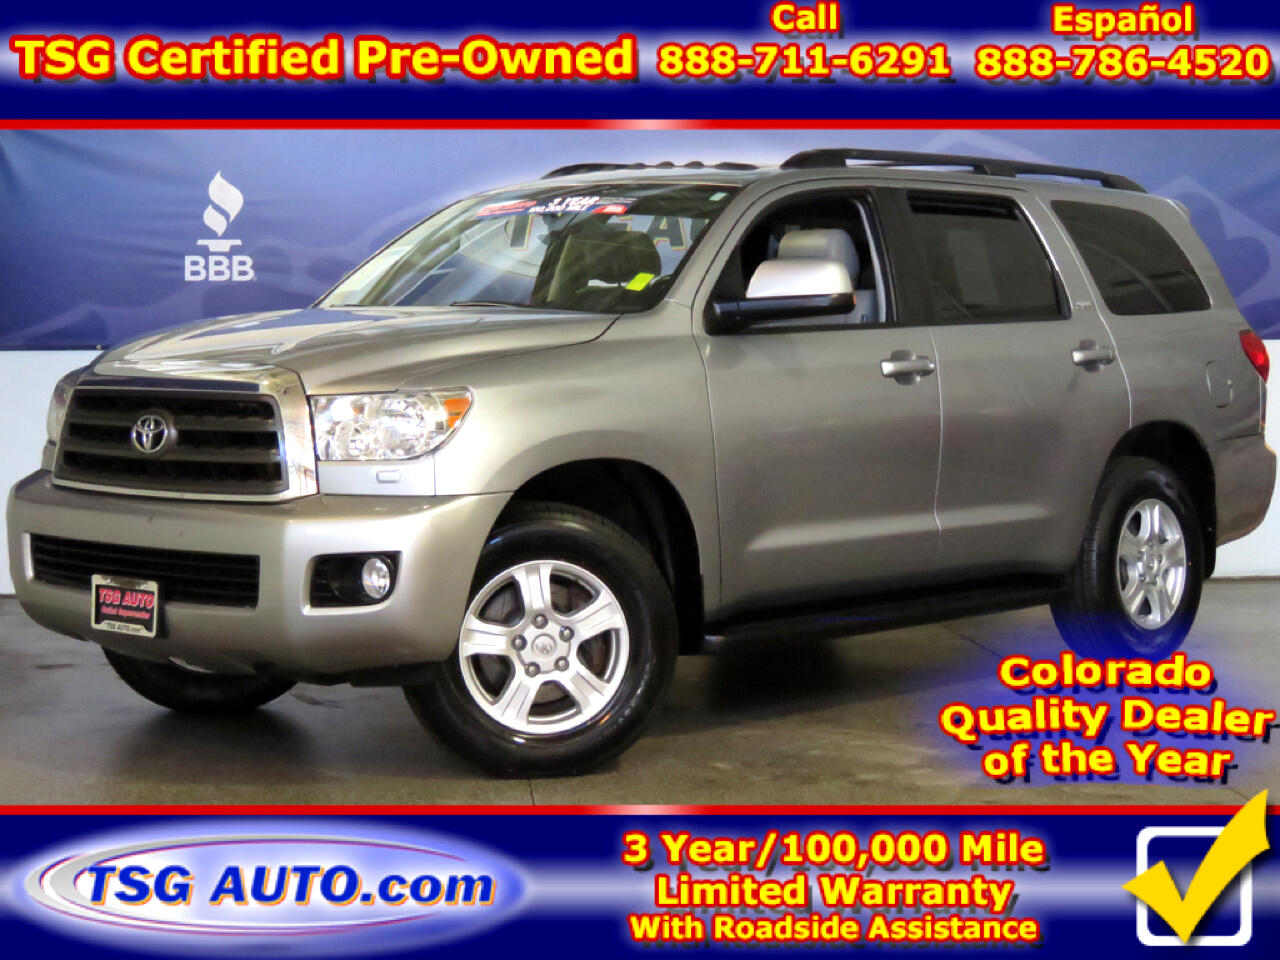 2012 Toyota Sequoia SR5 4.6L V8 4WD W/Leather